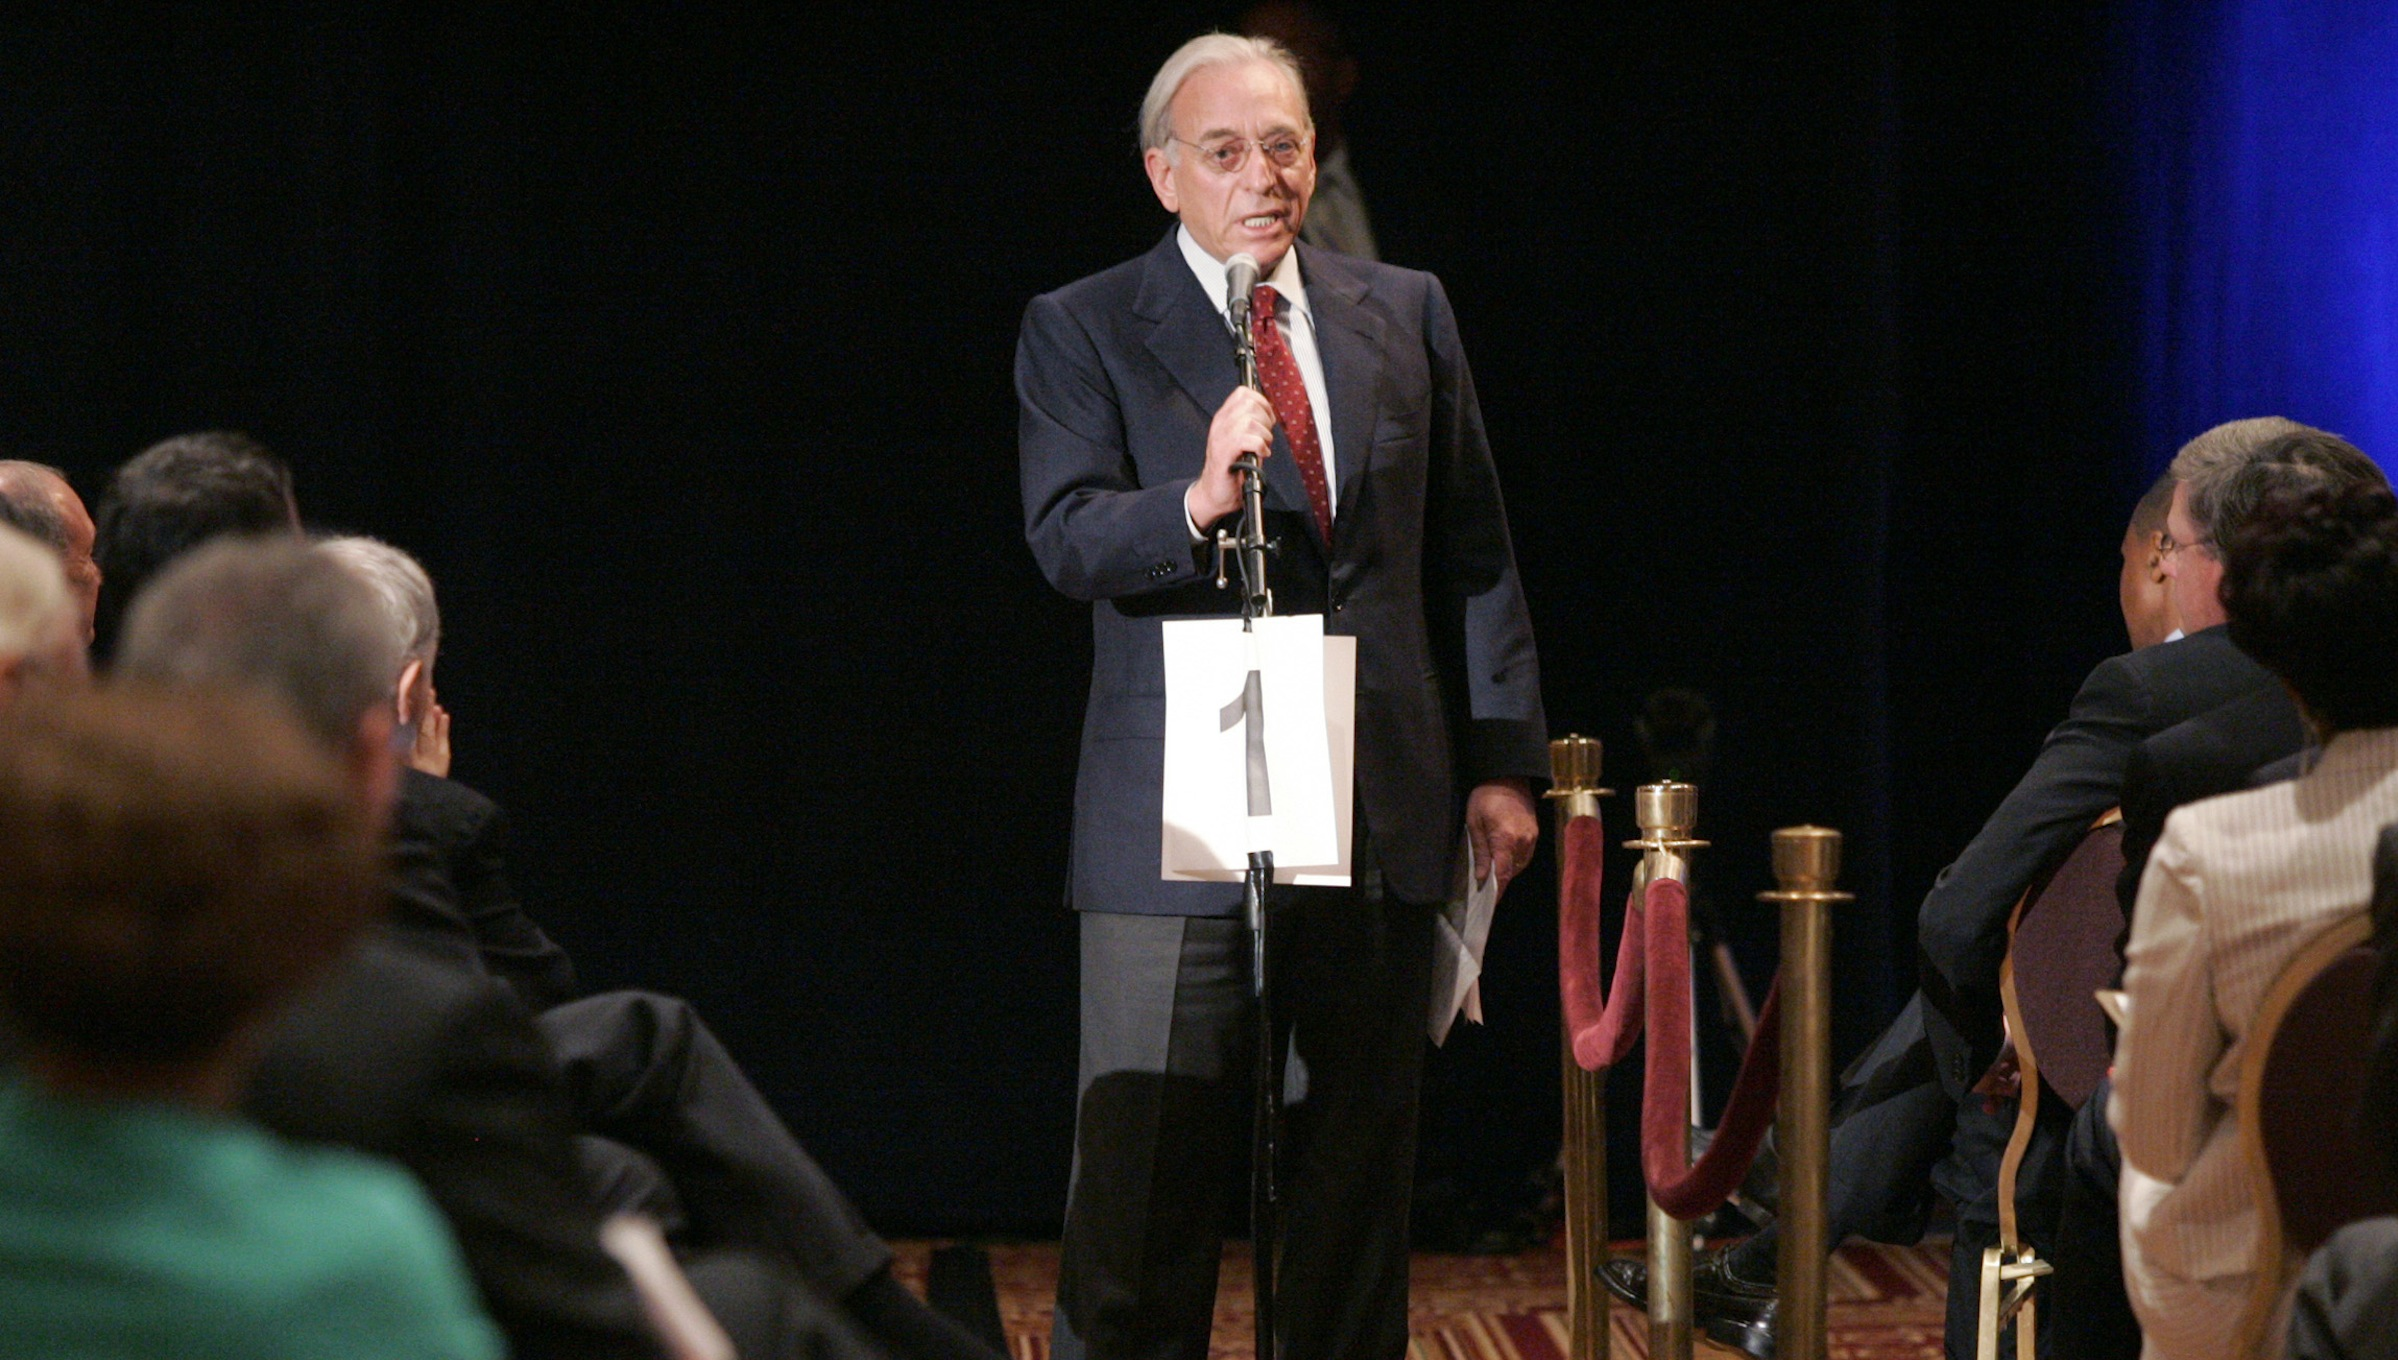 Nelson Peltz, one of the principles of the Trian Group, addresses the audience at the H.J. Heinz Co. annual shareholder's meeting in Pittsburgh, Pennsylvania August 16, 2006. REUTERS/Jason Cohn (UNITED STATES) - RTR1GFBD